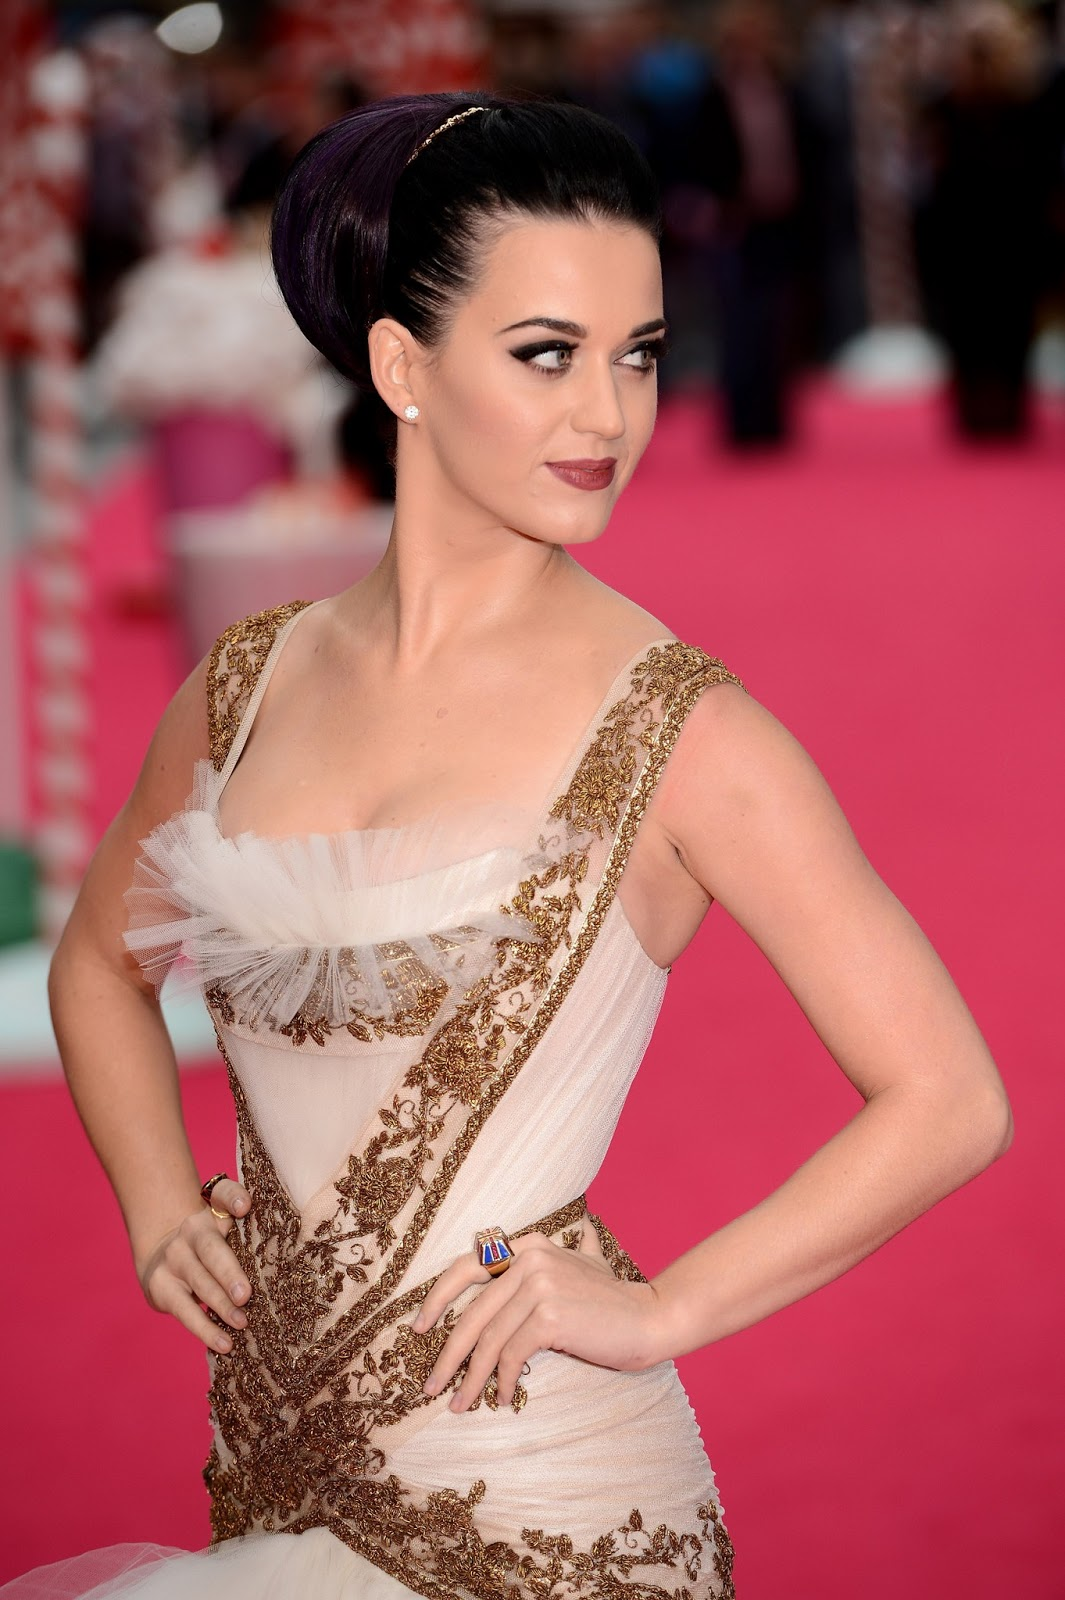 Wikimise: Katy Perry wiki and pics